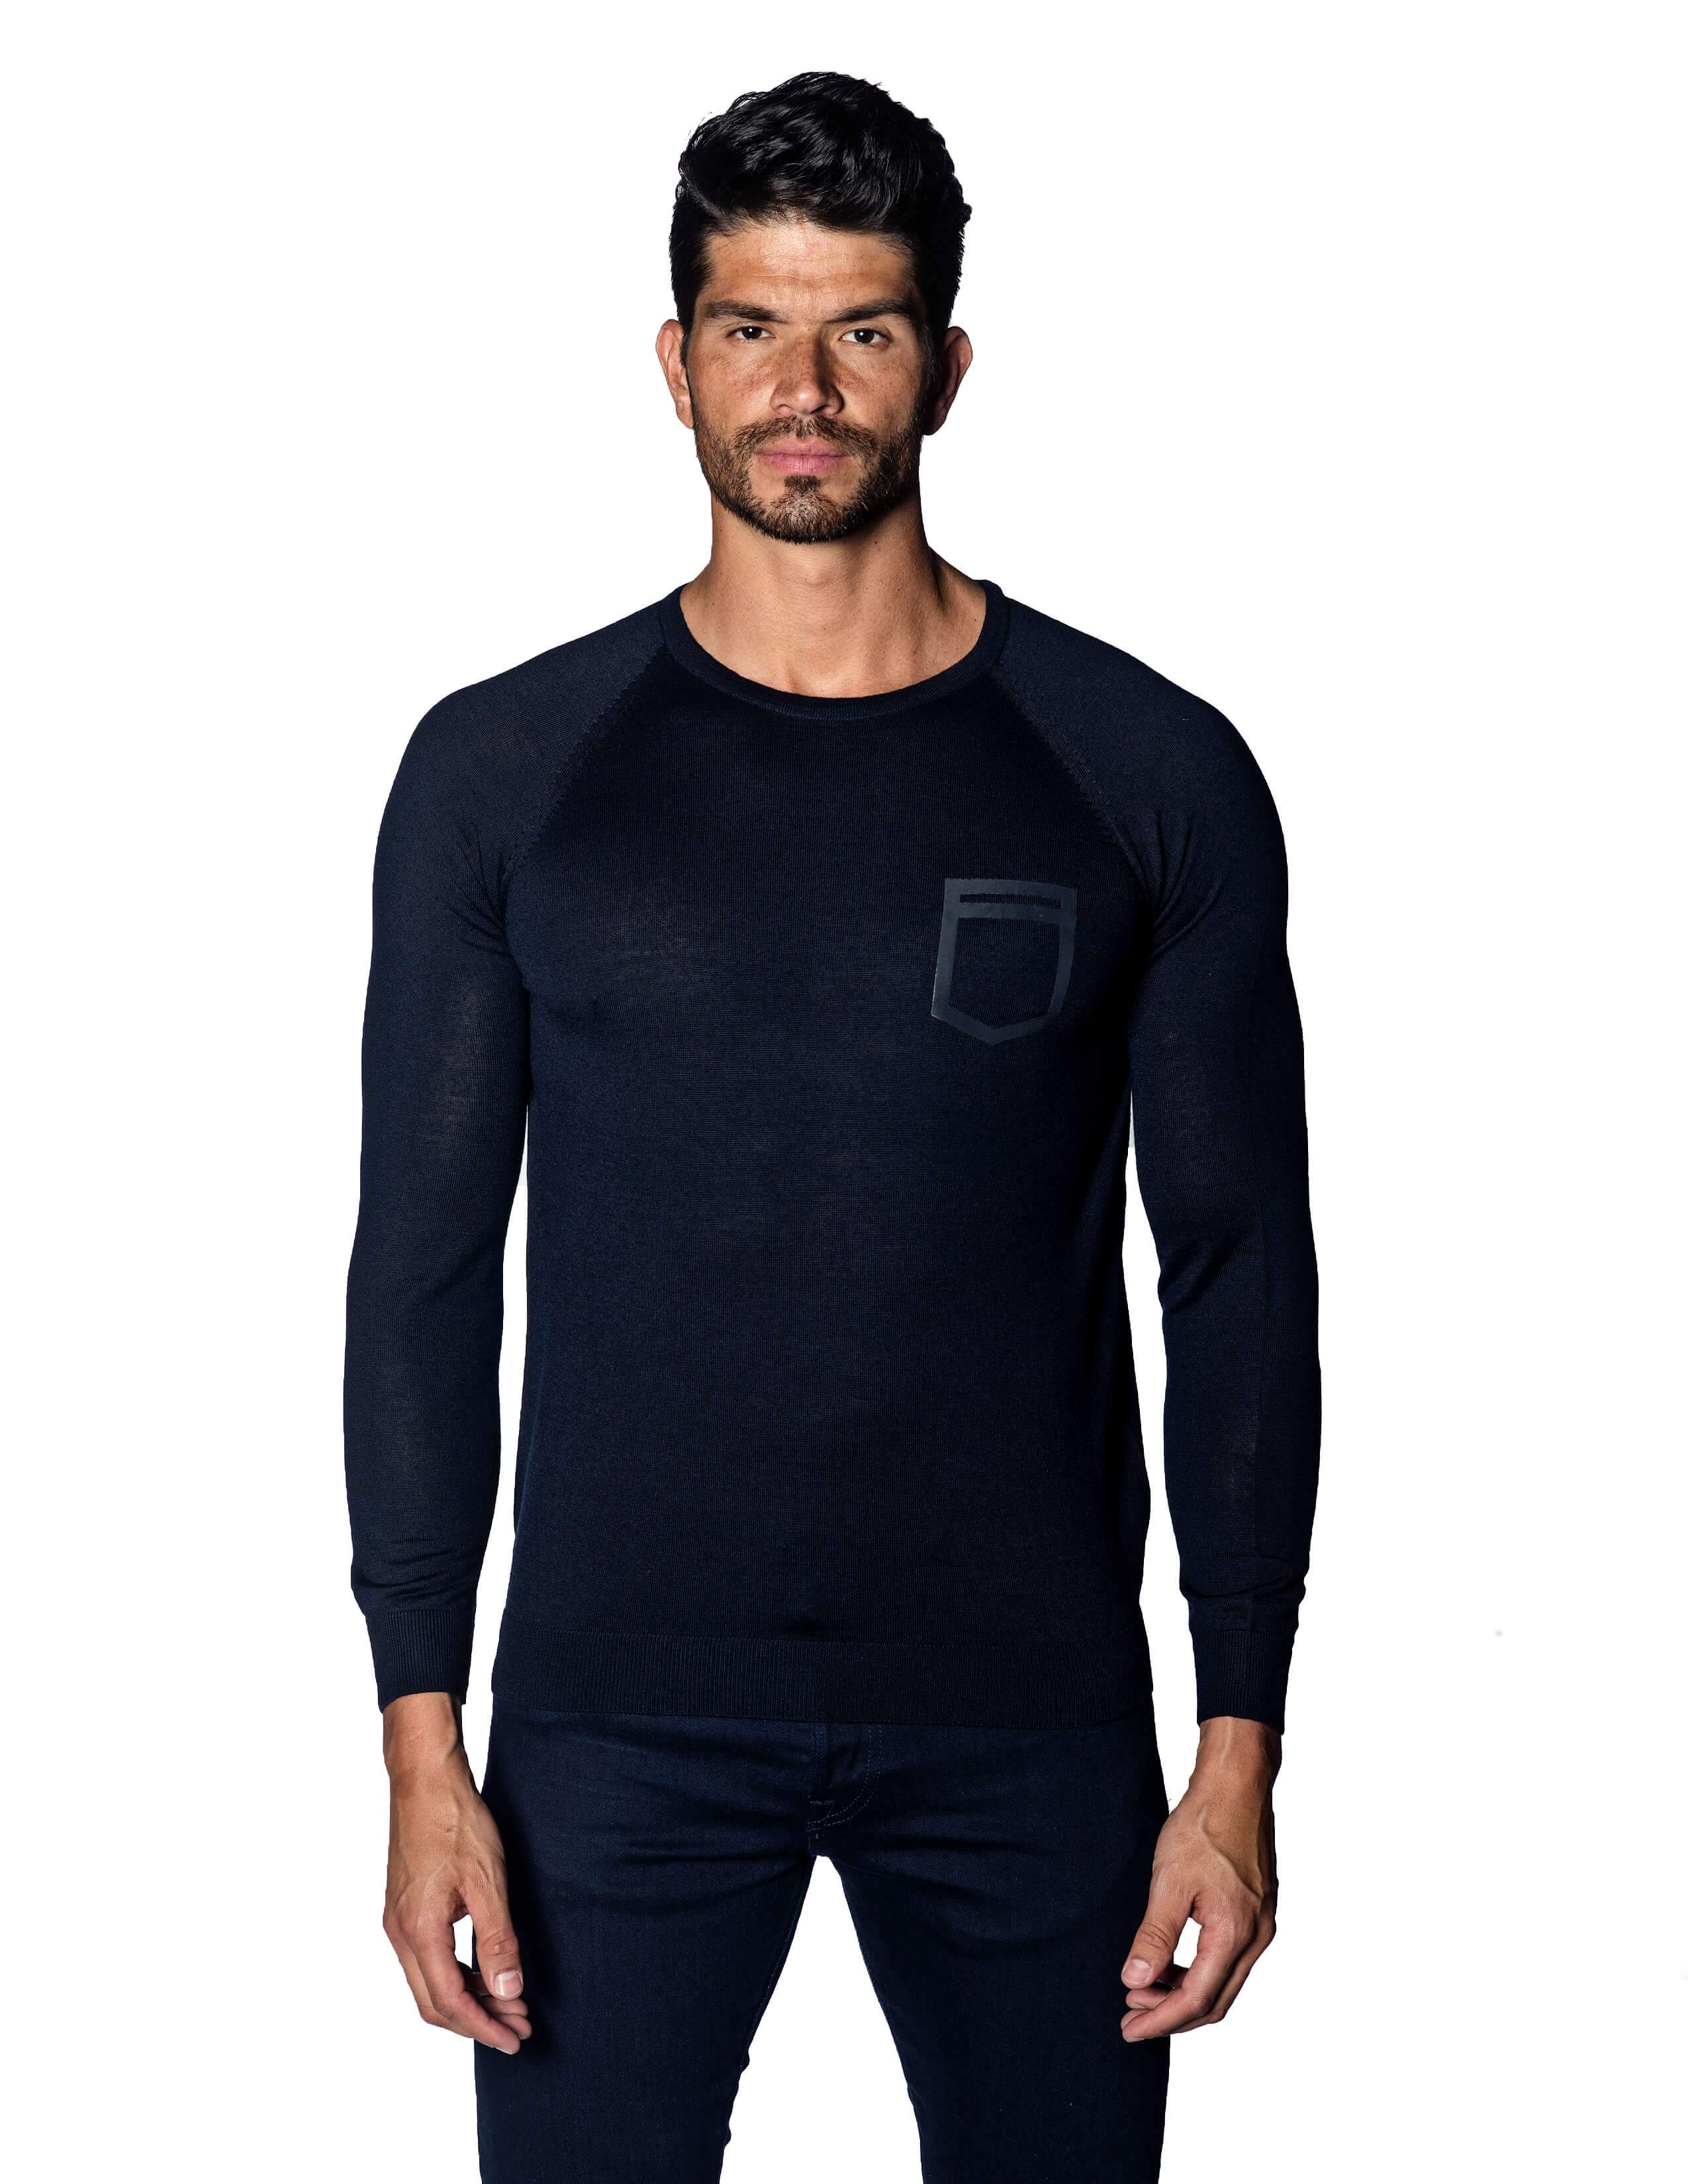 Navy Sweater Crew Neck with Faux Pocket for Men 1896-NV